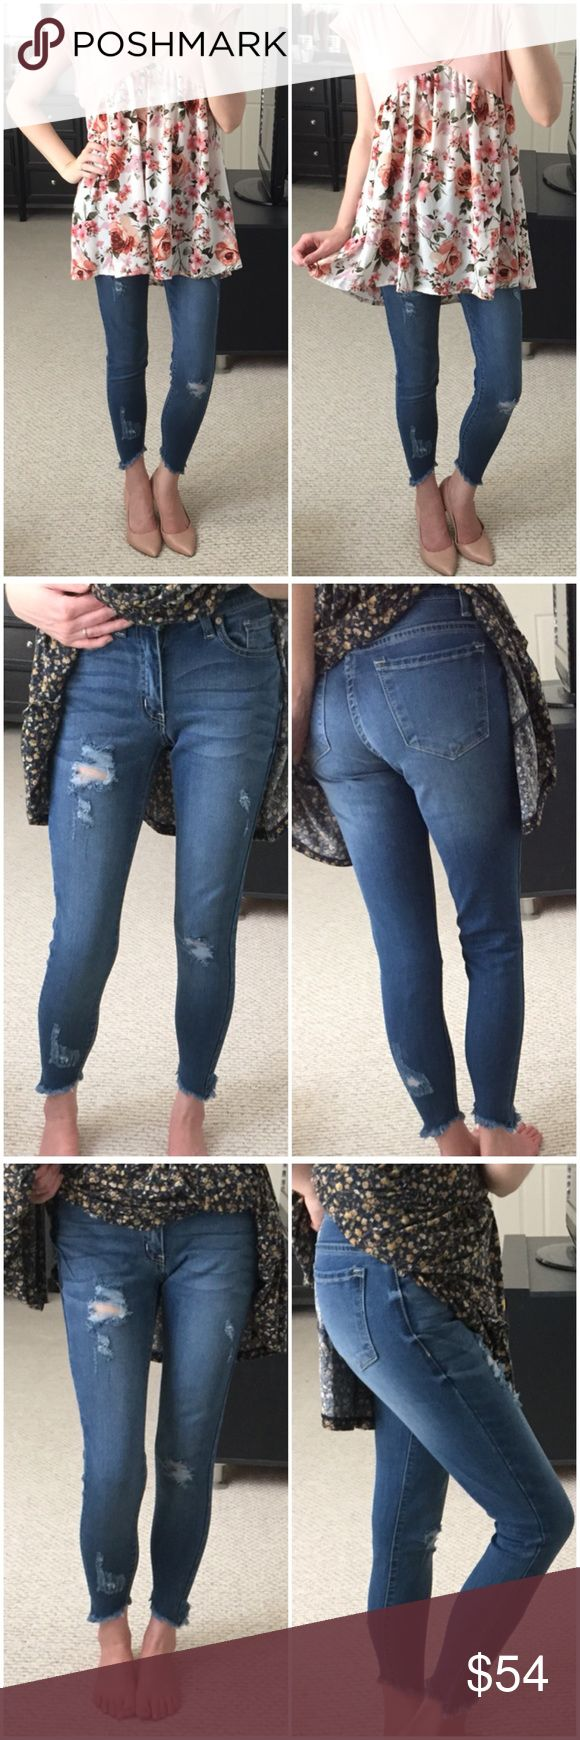 ▫Medium Wash Distressed Denim w/ Uneven Hem These are amazing and feel buttery soft on!   Fit like a dream and so stretchy and comfy! Fave customer brand. Medium wash denim with distressing and uneven frayed bottom hem! So unique and have great character. And easy to dress up or down! Don't see your size? Just ask...I might be able to get them! Mid-rise. Modeling 1/24 and I'm a 25. 54% cotton, 34% rayon, 10% polyester, 2% spandex. *Bundle 2+ items for discount. Jeans Skinny